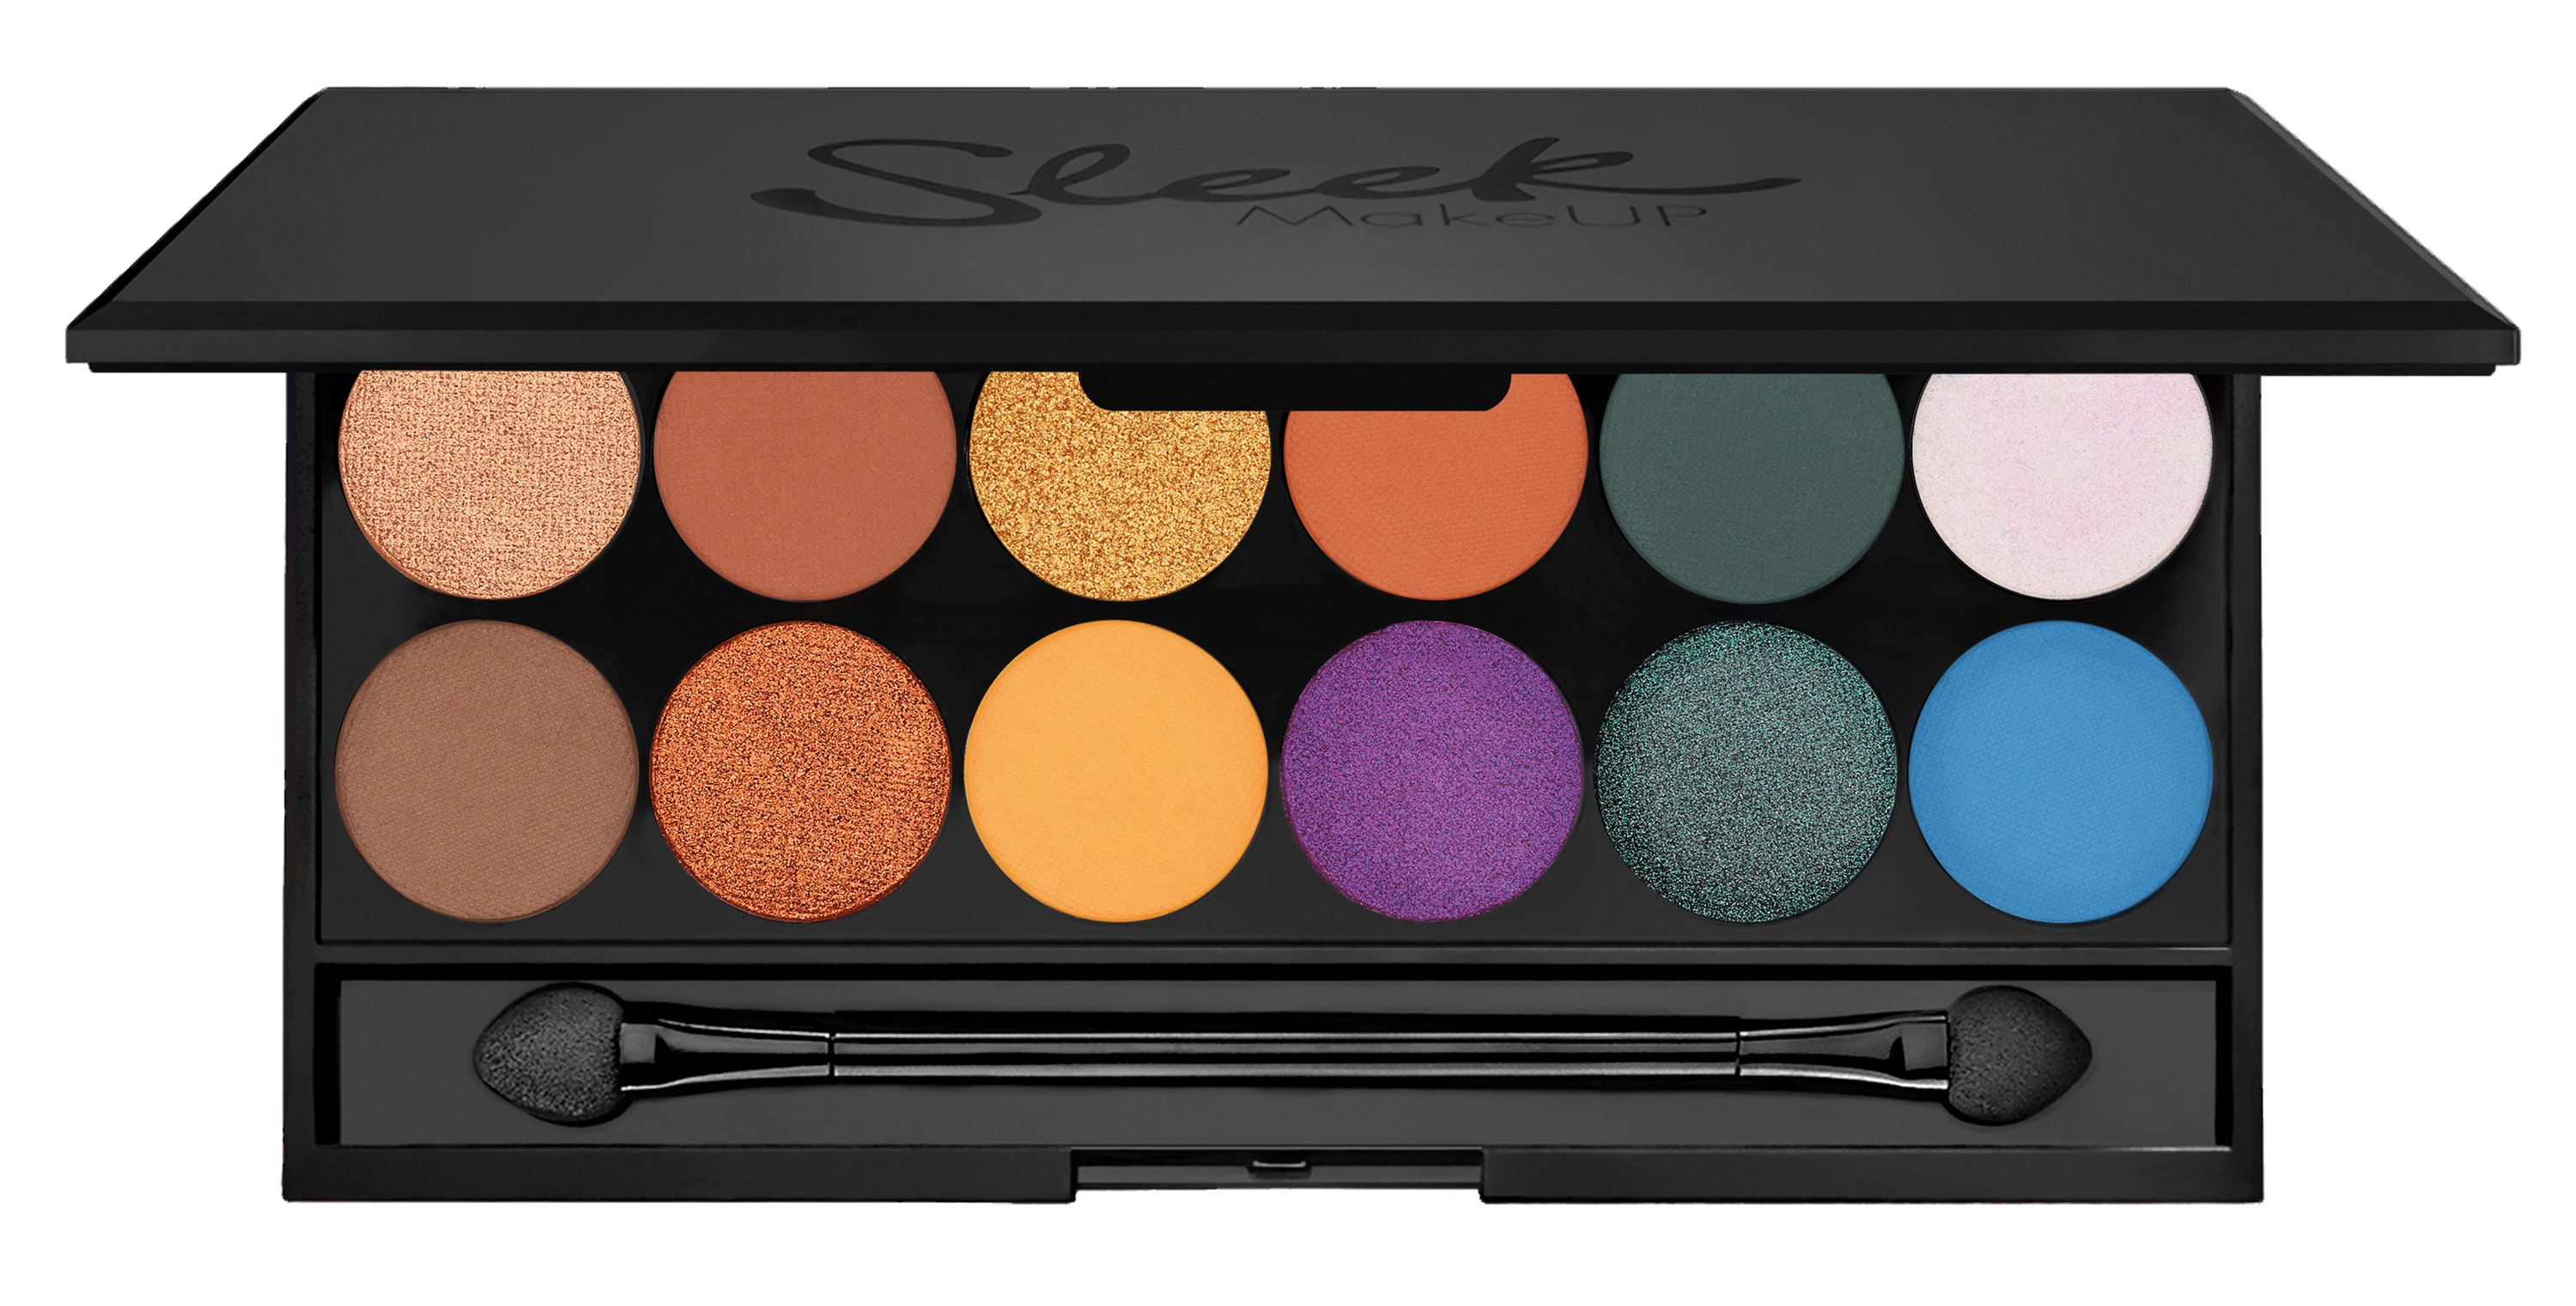 Sleek Makeup I Divine Eye Shadow Palette Colour Carnage, £8.99/AED40.20, Boots